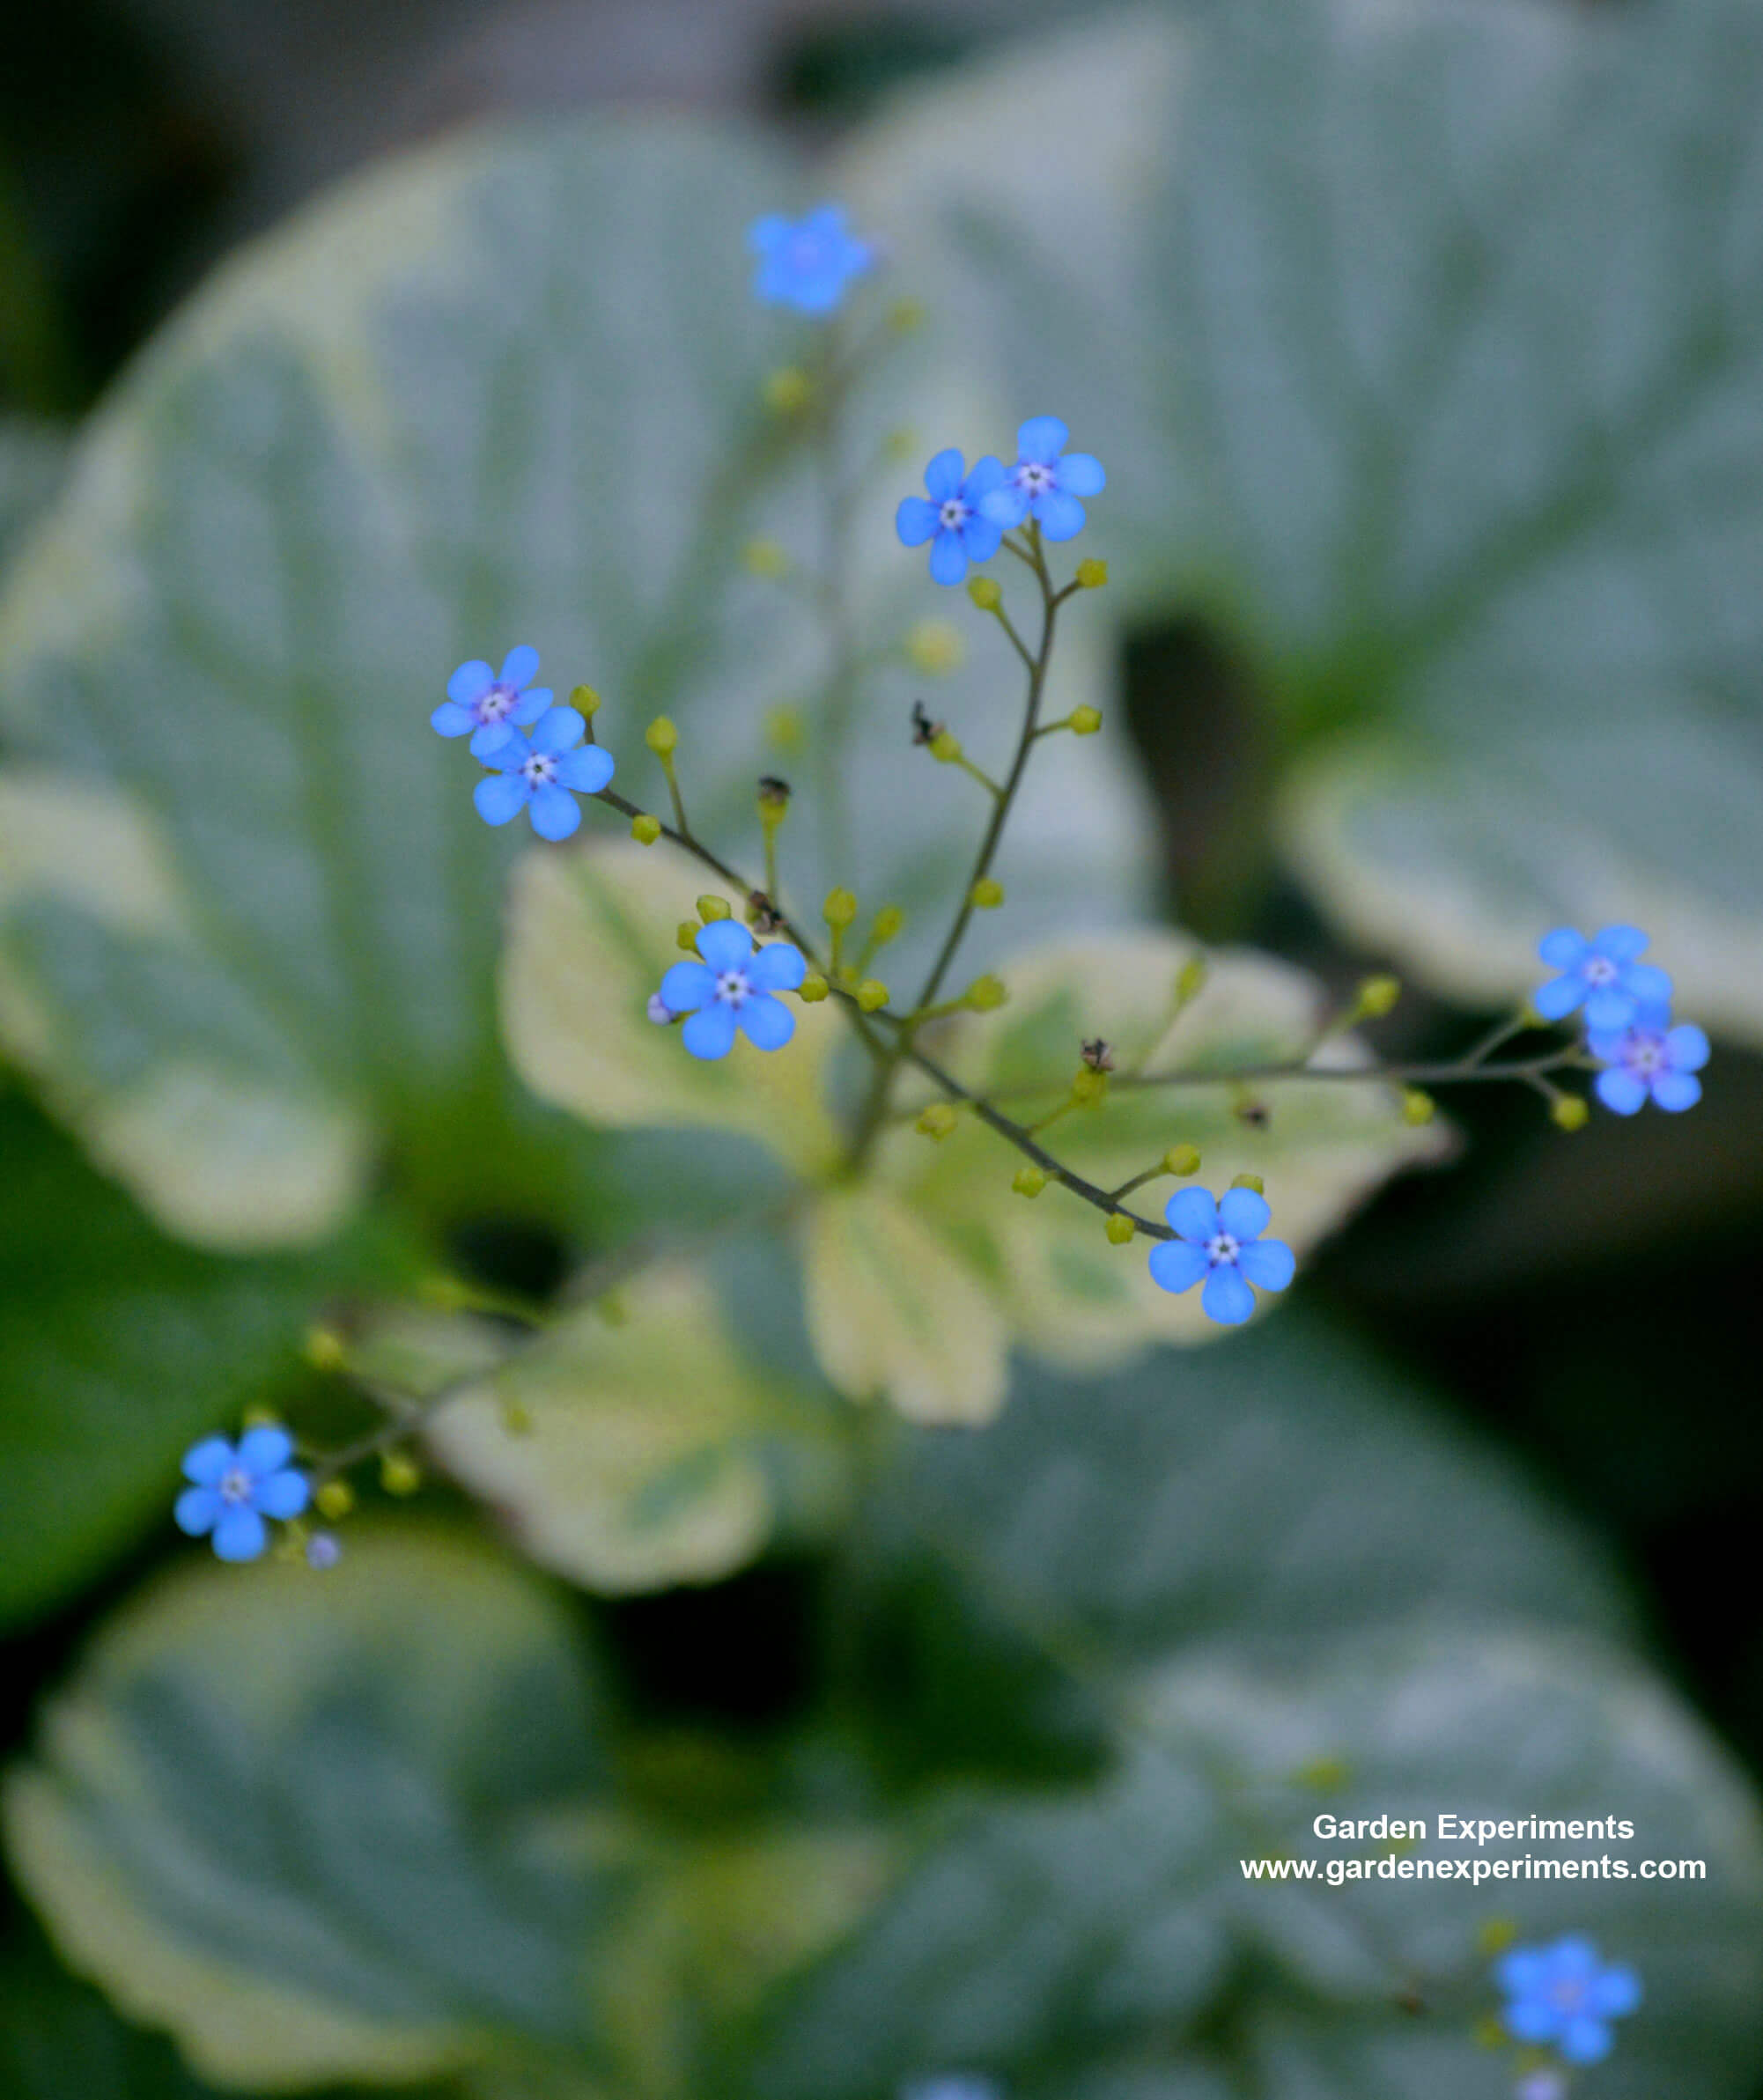 10 Plants for Shade Gardens: Plants Grown for Flowers, Leaf Colors ...